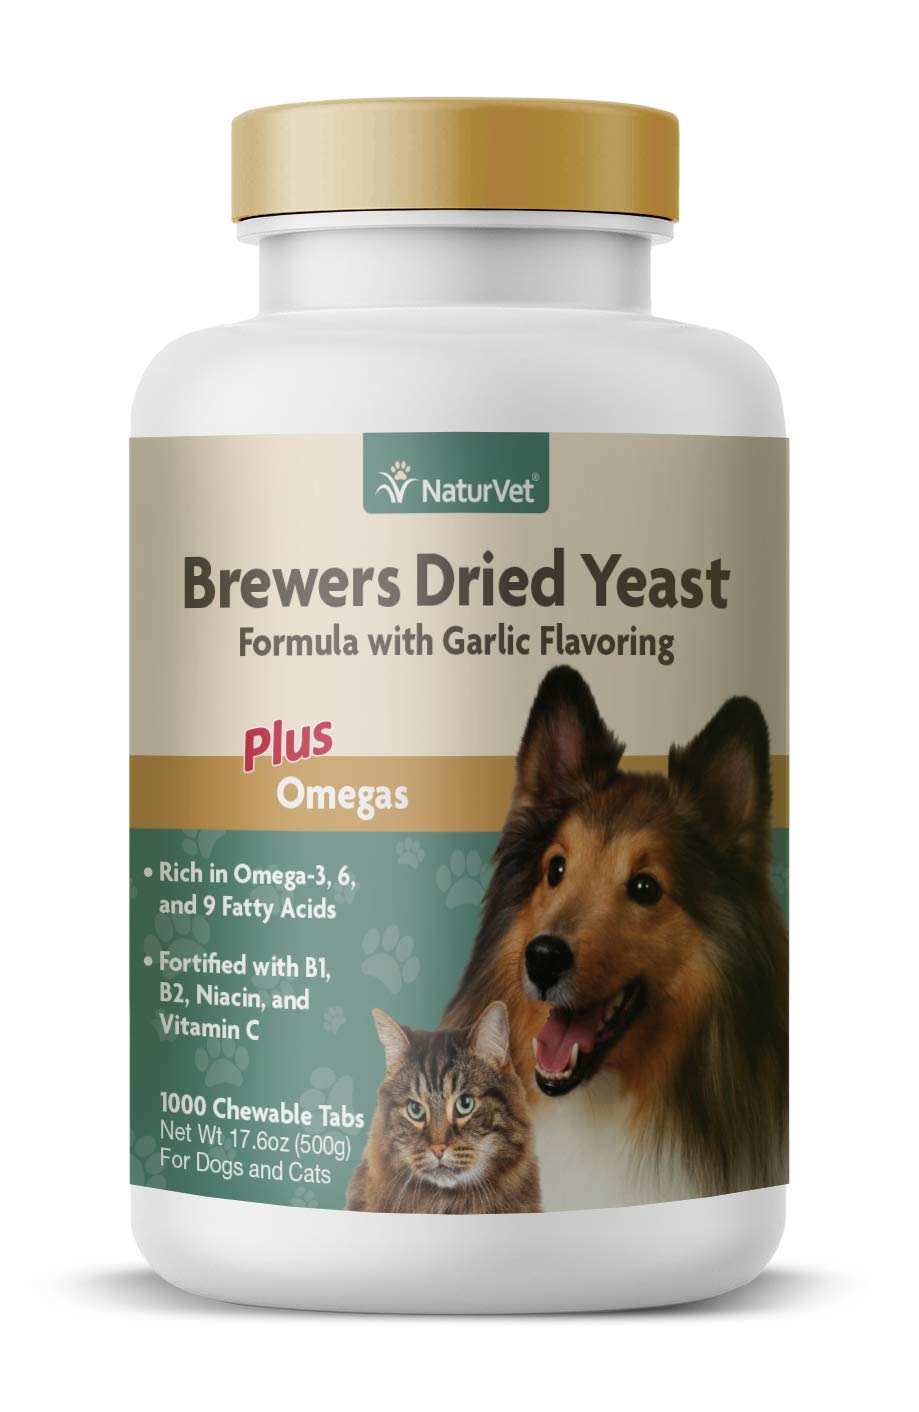 NaturVet - Brewer's Dried Yeast Formula with Garlic Flavoring - Plus Omegas - Rich in Omega-3, 6 & 9 Fatty Acids - Fortified with B1, B2, Niacin & Vitamin C - for Dogs & Cats - 1000 Chewable Tablets by NaturVet